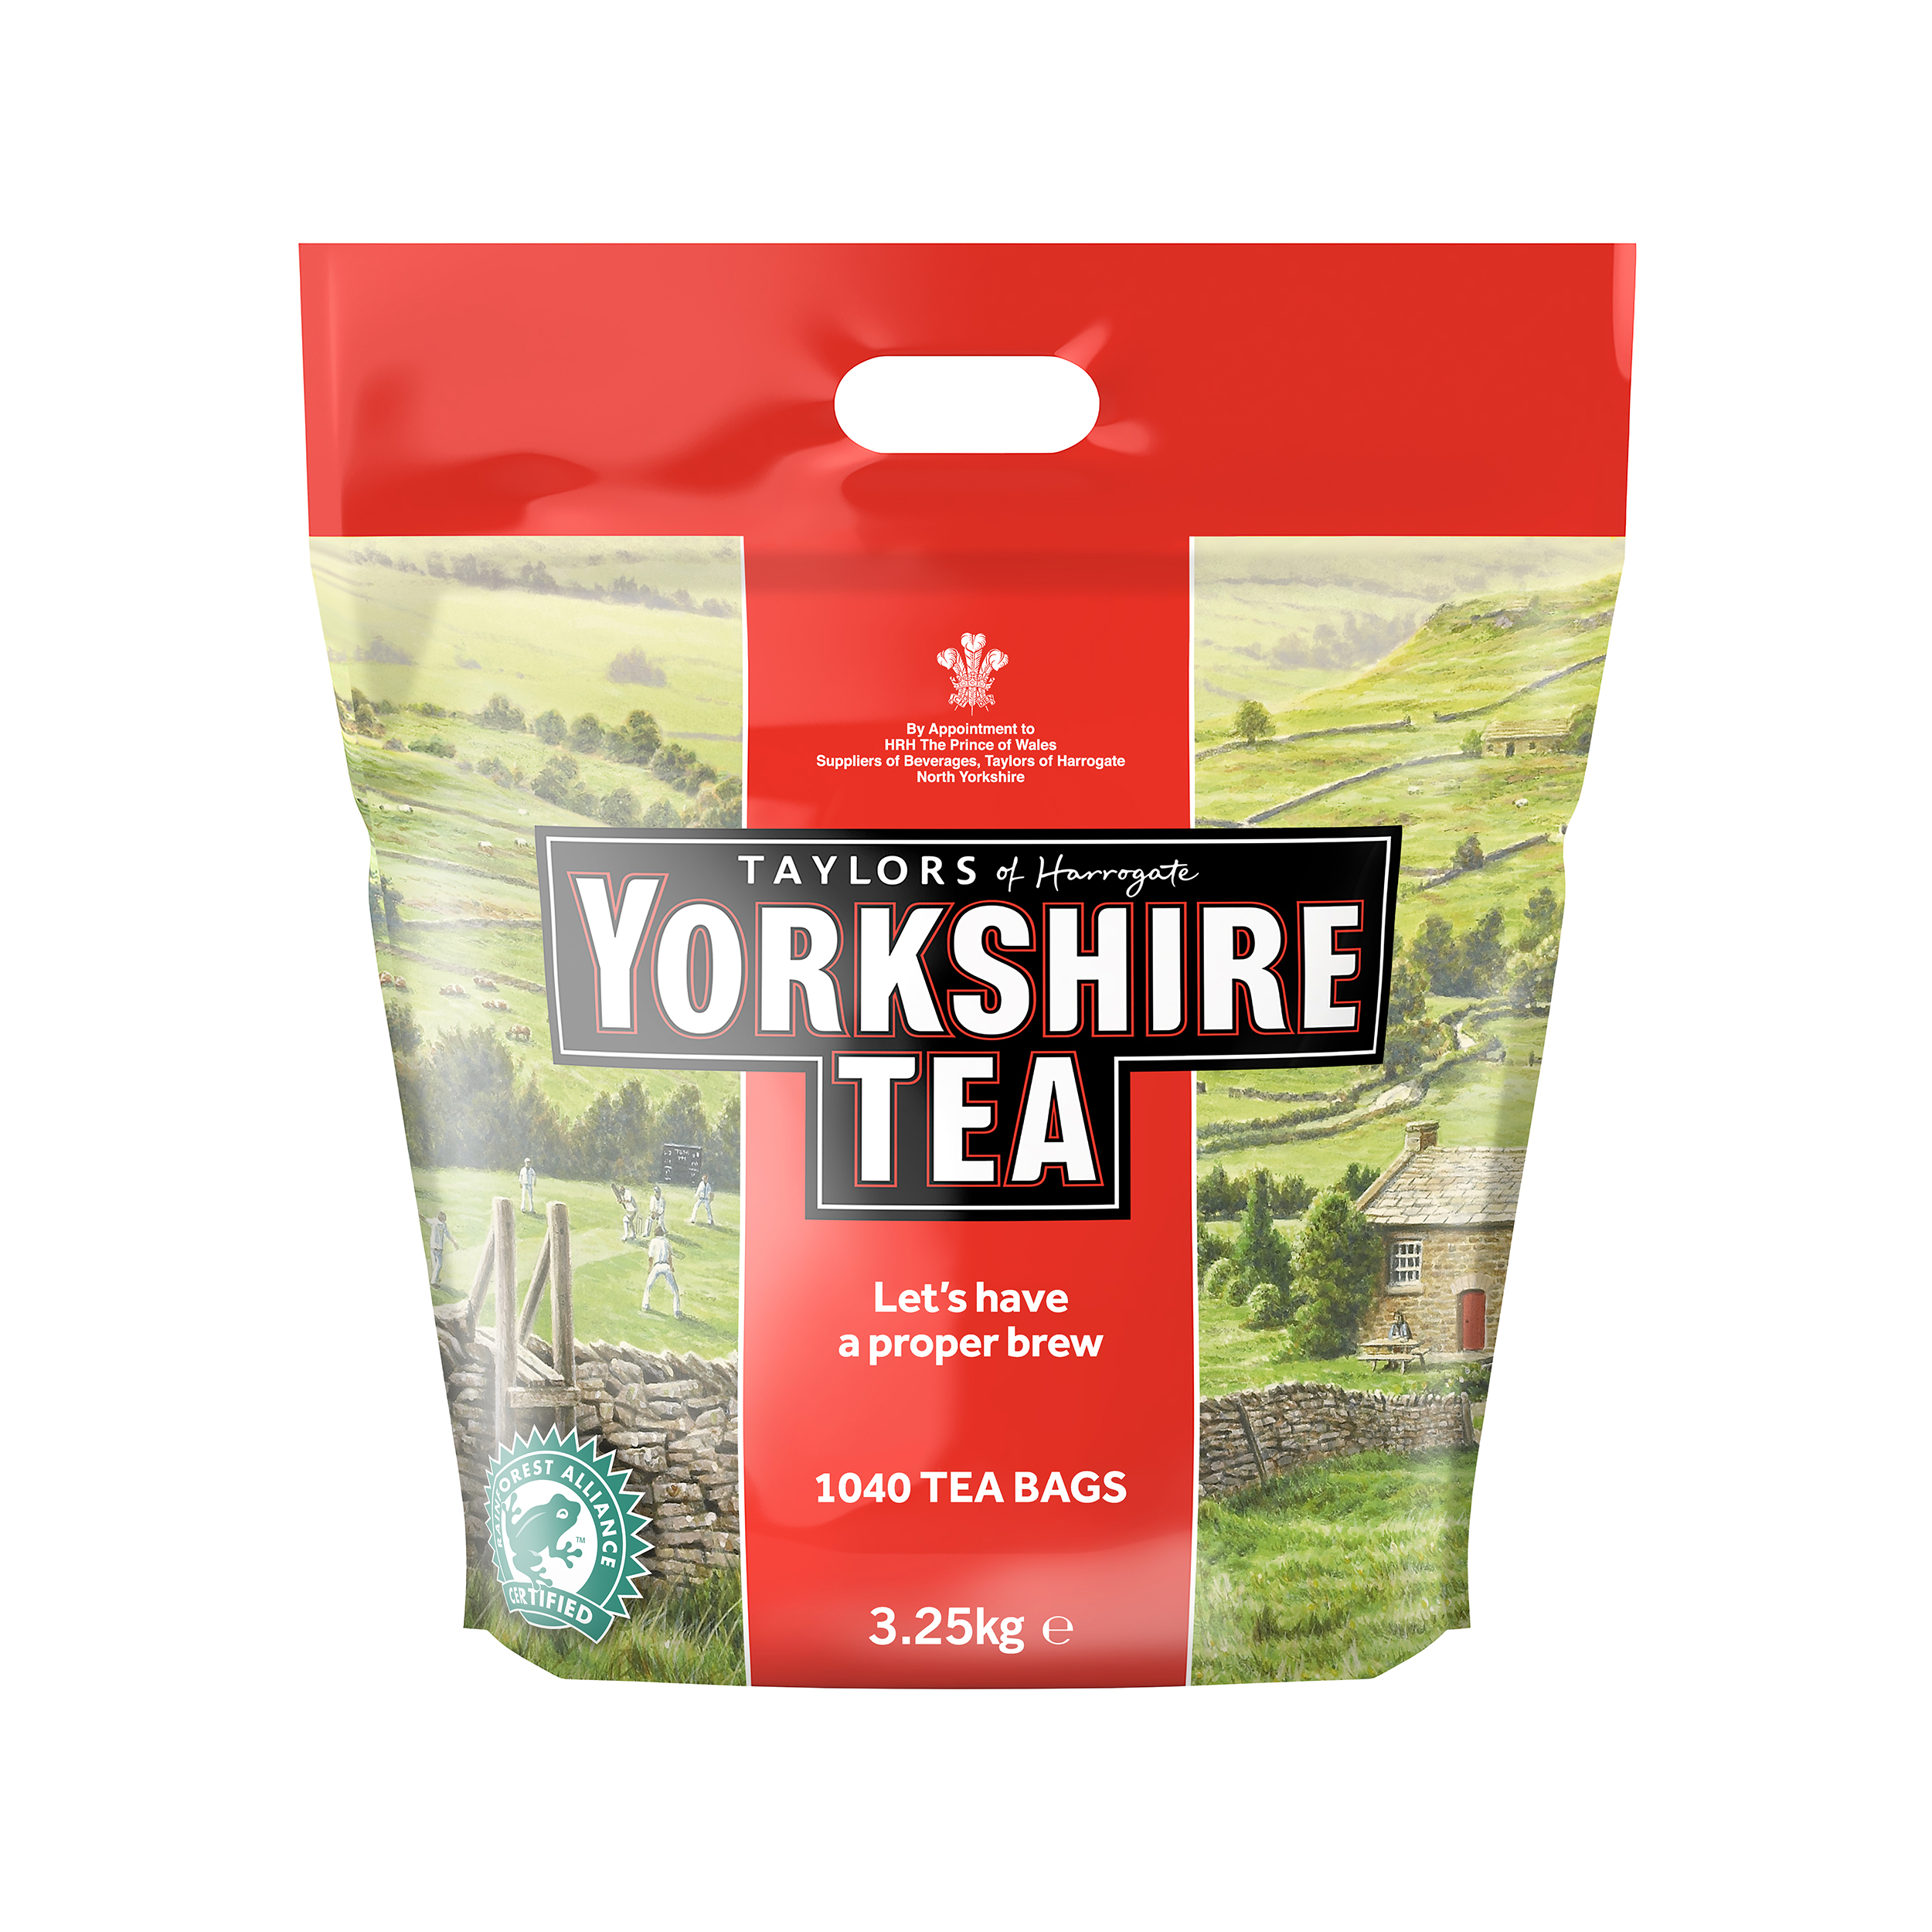 Yorkshire Tea Bags Ref 0403170 Pack 1040